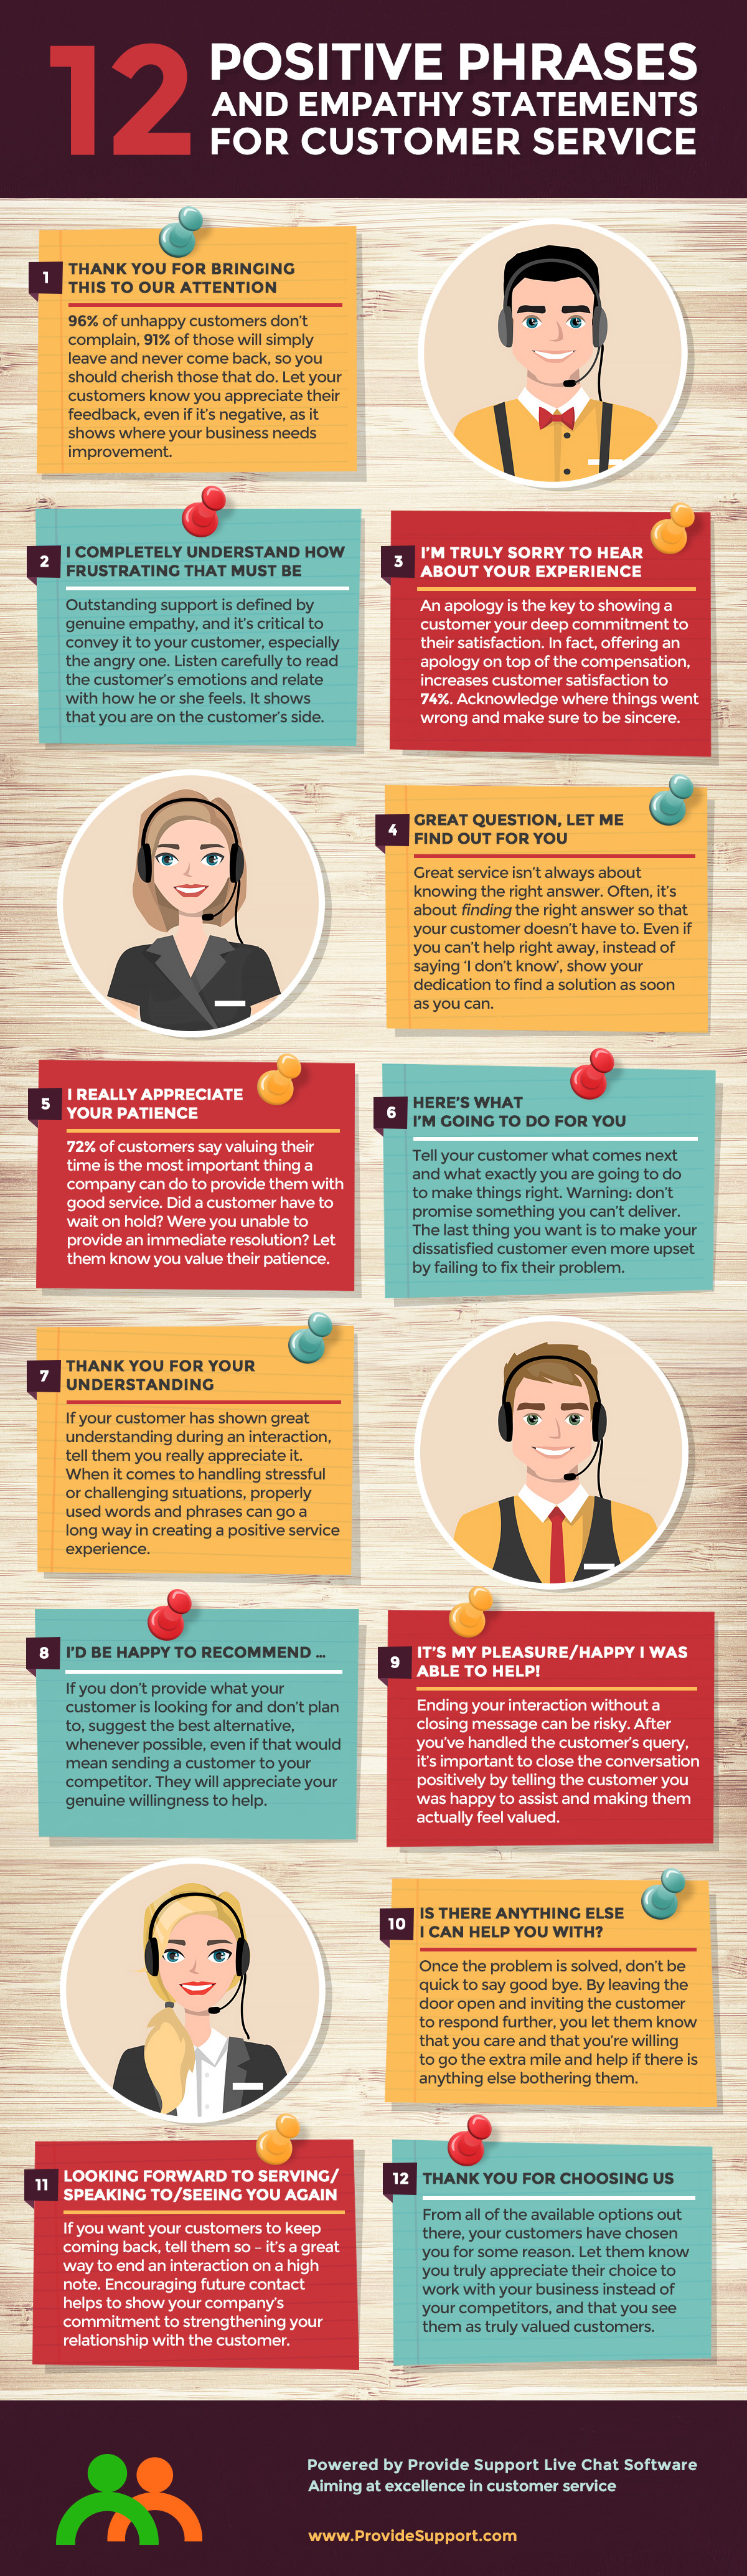 12 Positive Phrases and Empathy Statements for Customer Service [Inforgraphic from Provide Support]